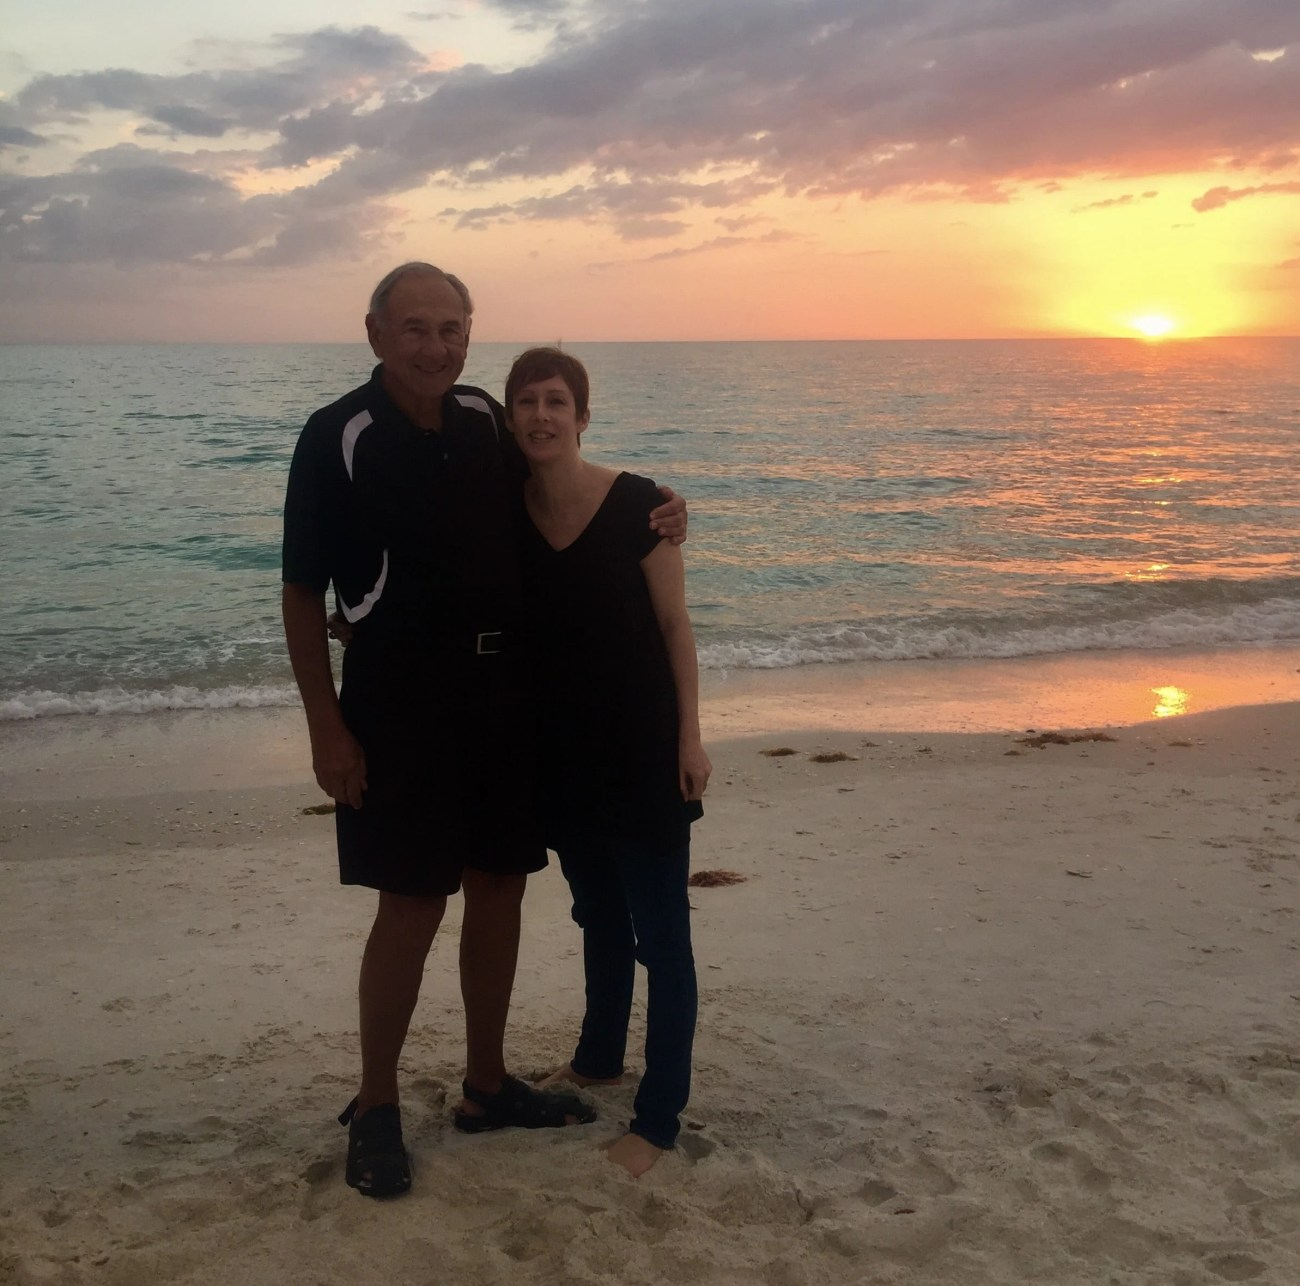 Susan Portnoy and Father on a beach - Taking Bad Photos